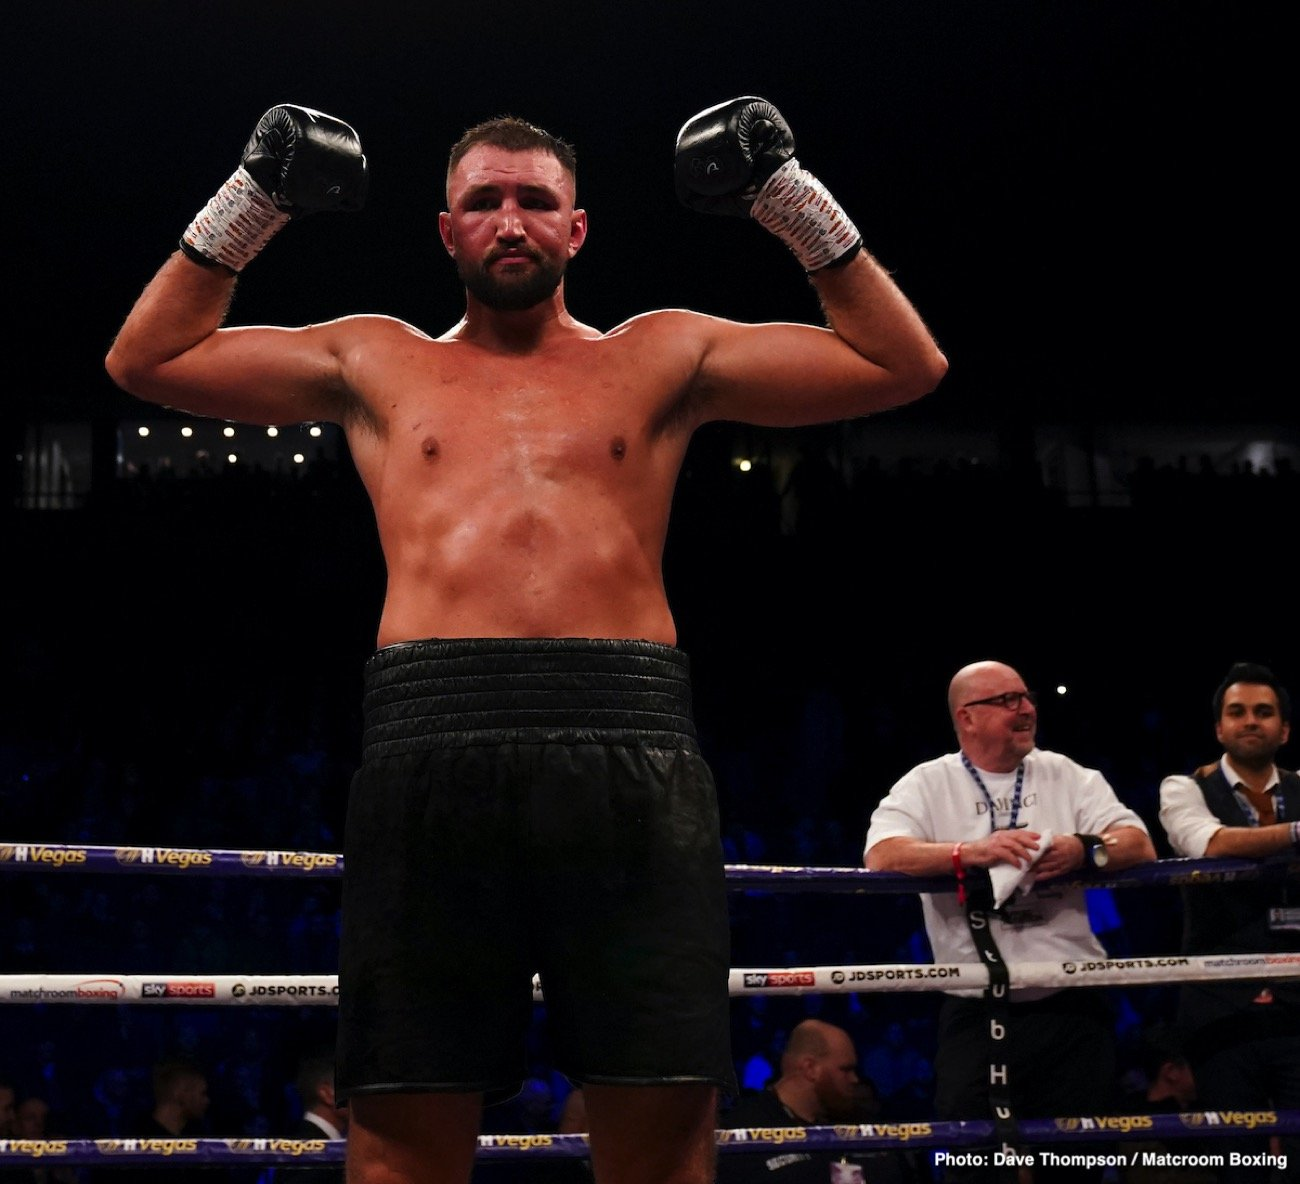 Hughie Fury - Hughie Fury says he would be open to a behind closed doors domestic Heavyweight clash with Matchroom stablemate Dave Allen whilst his World Title hopes have been put on hold due to the COVID-19 outbreak as he spoke with Chris Lloyd in the latest episode of Matchroom Boxing's podcast 'The Lockdown Tapes'.